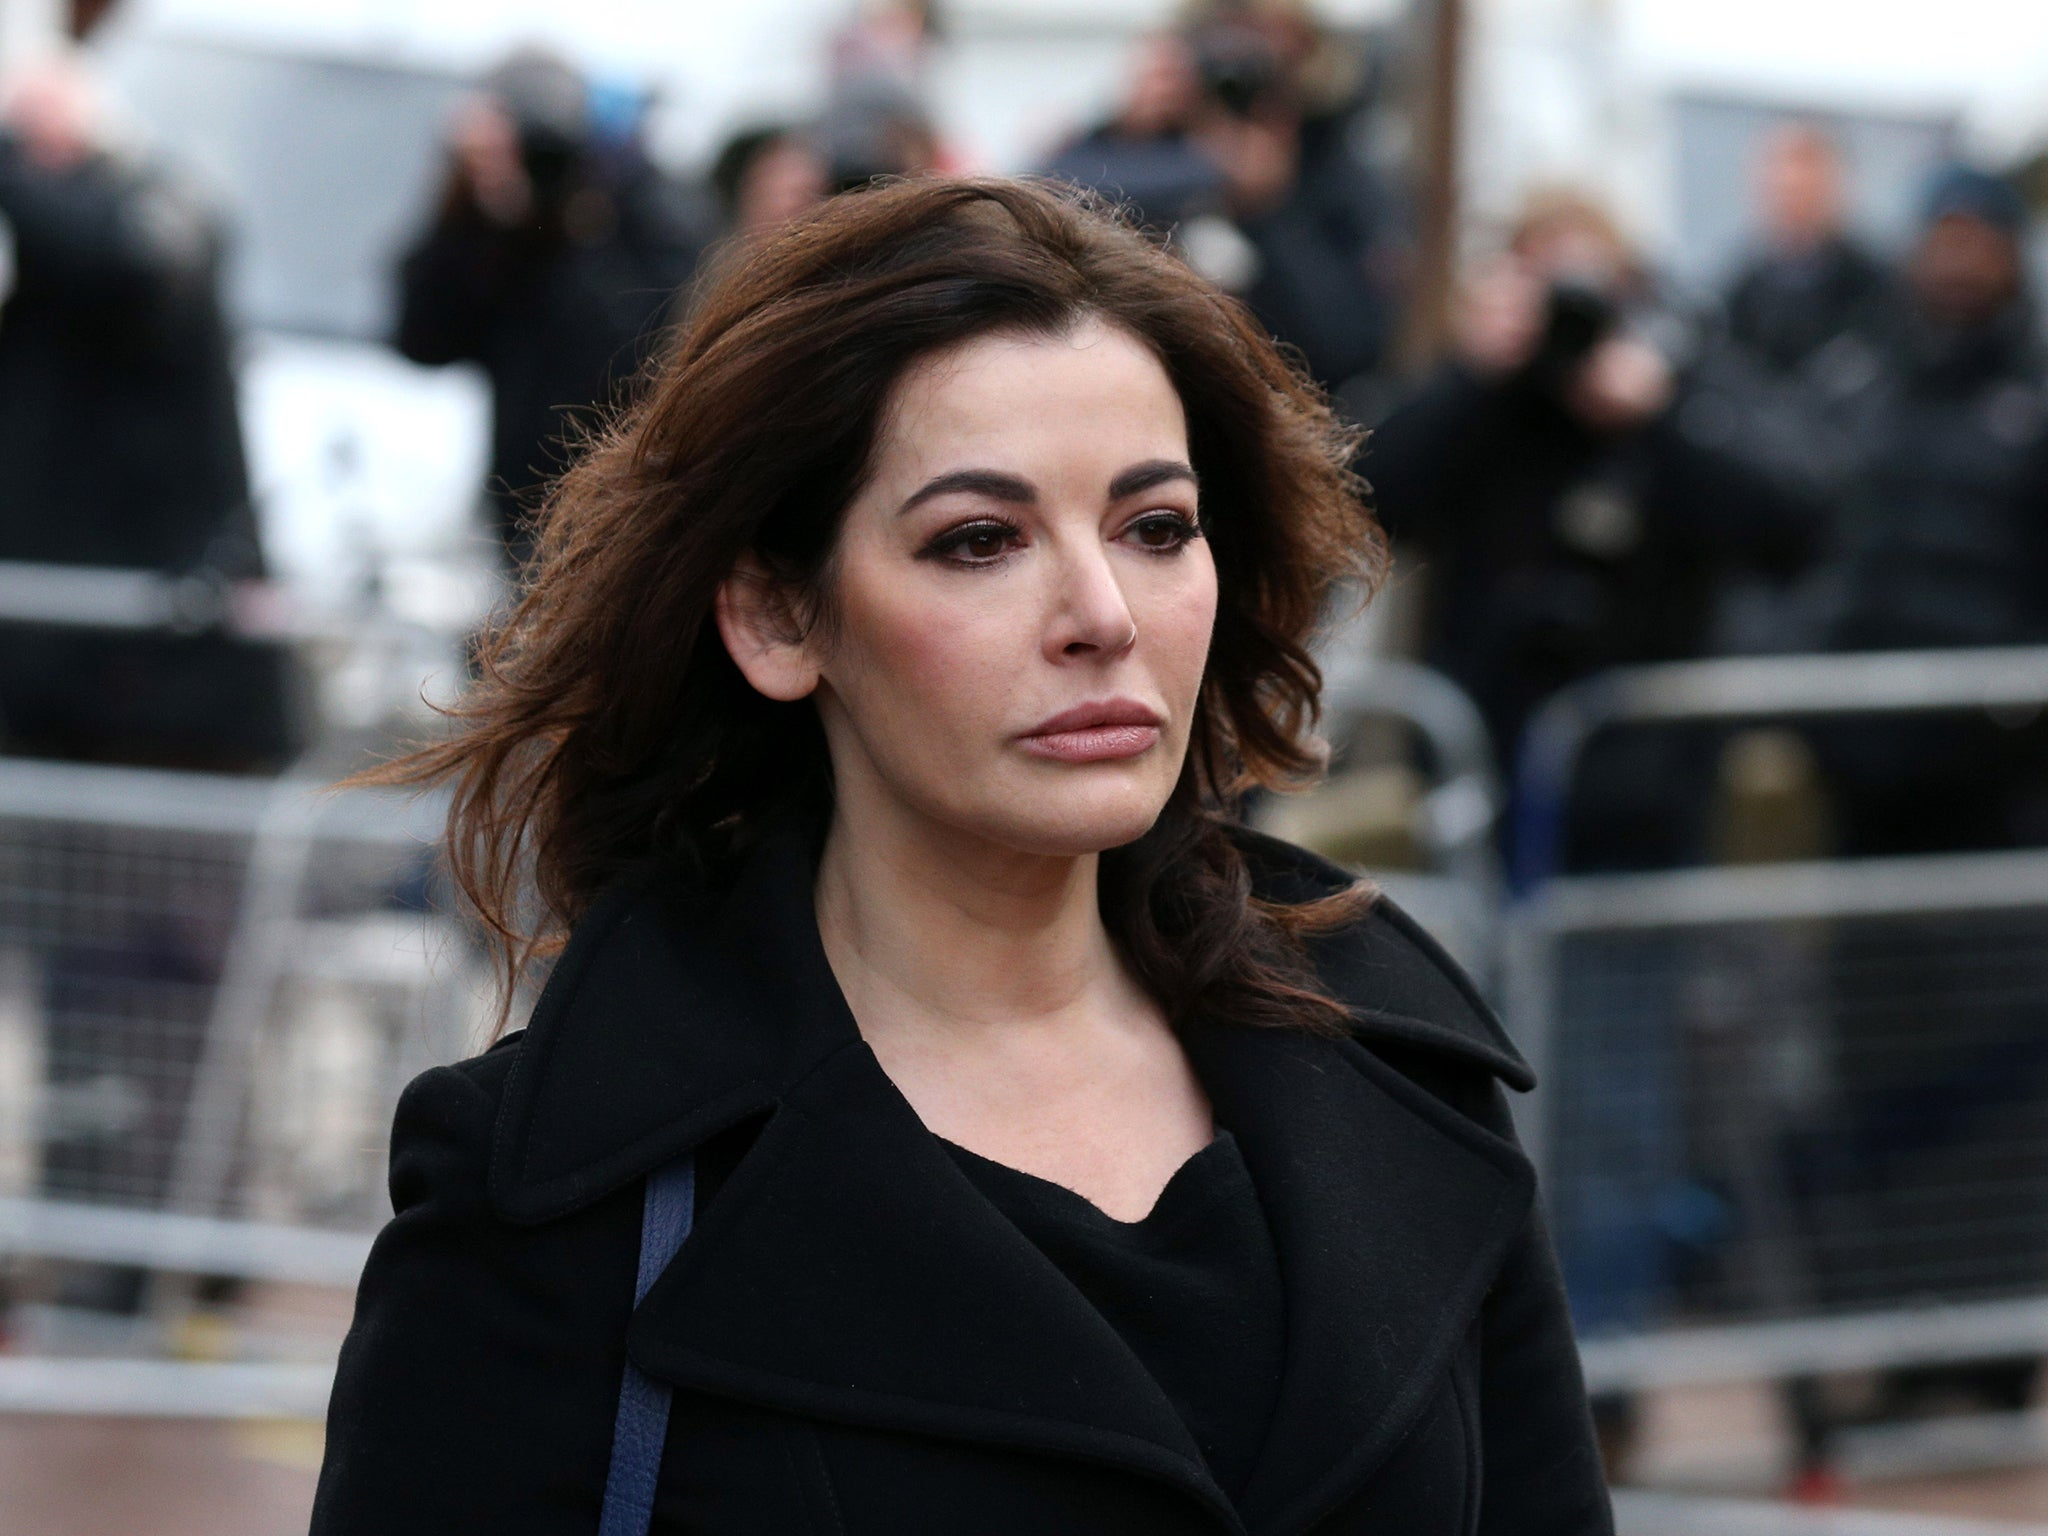 Watch Nigella Lawson Joins Debate About ControversialConservative Party Redundancy Payouts video